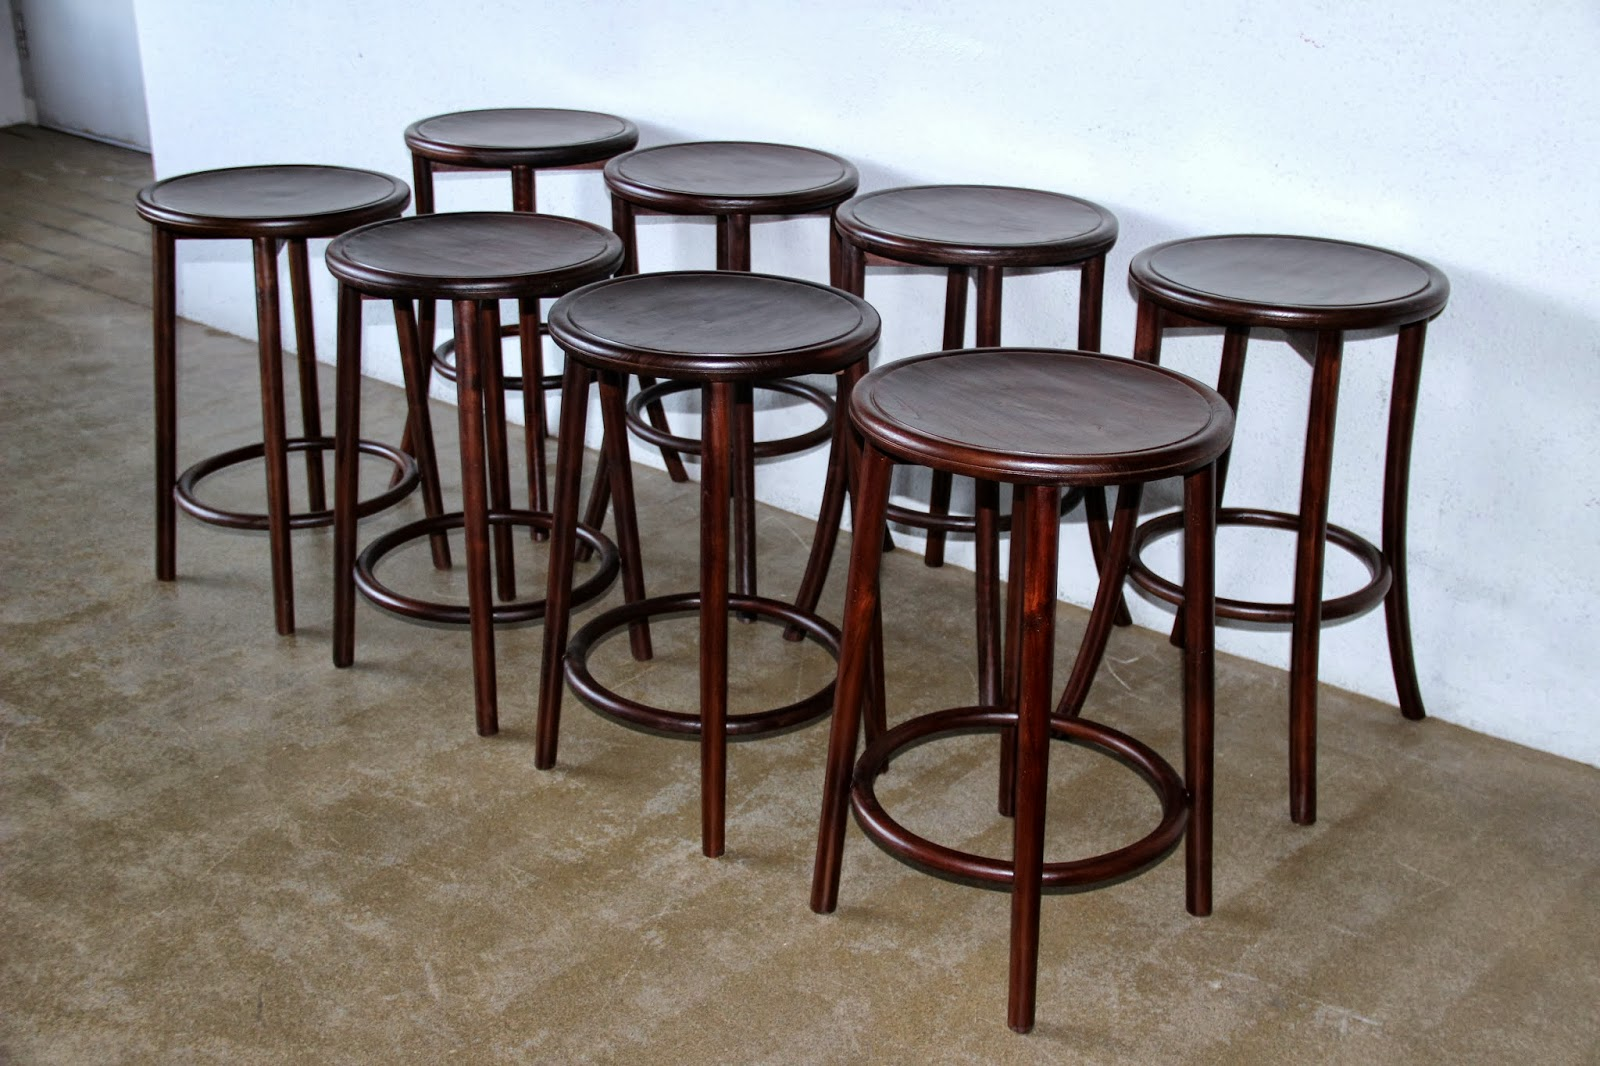 KOPITIAM CHAIRS STOOLS AND BAR STOOLS